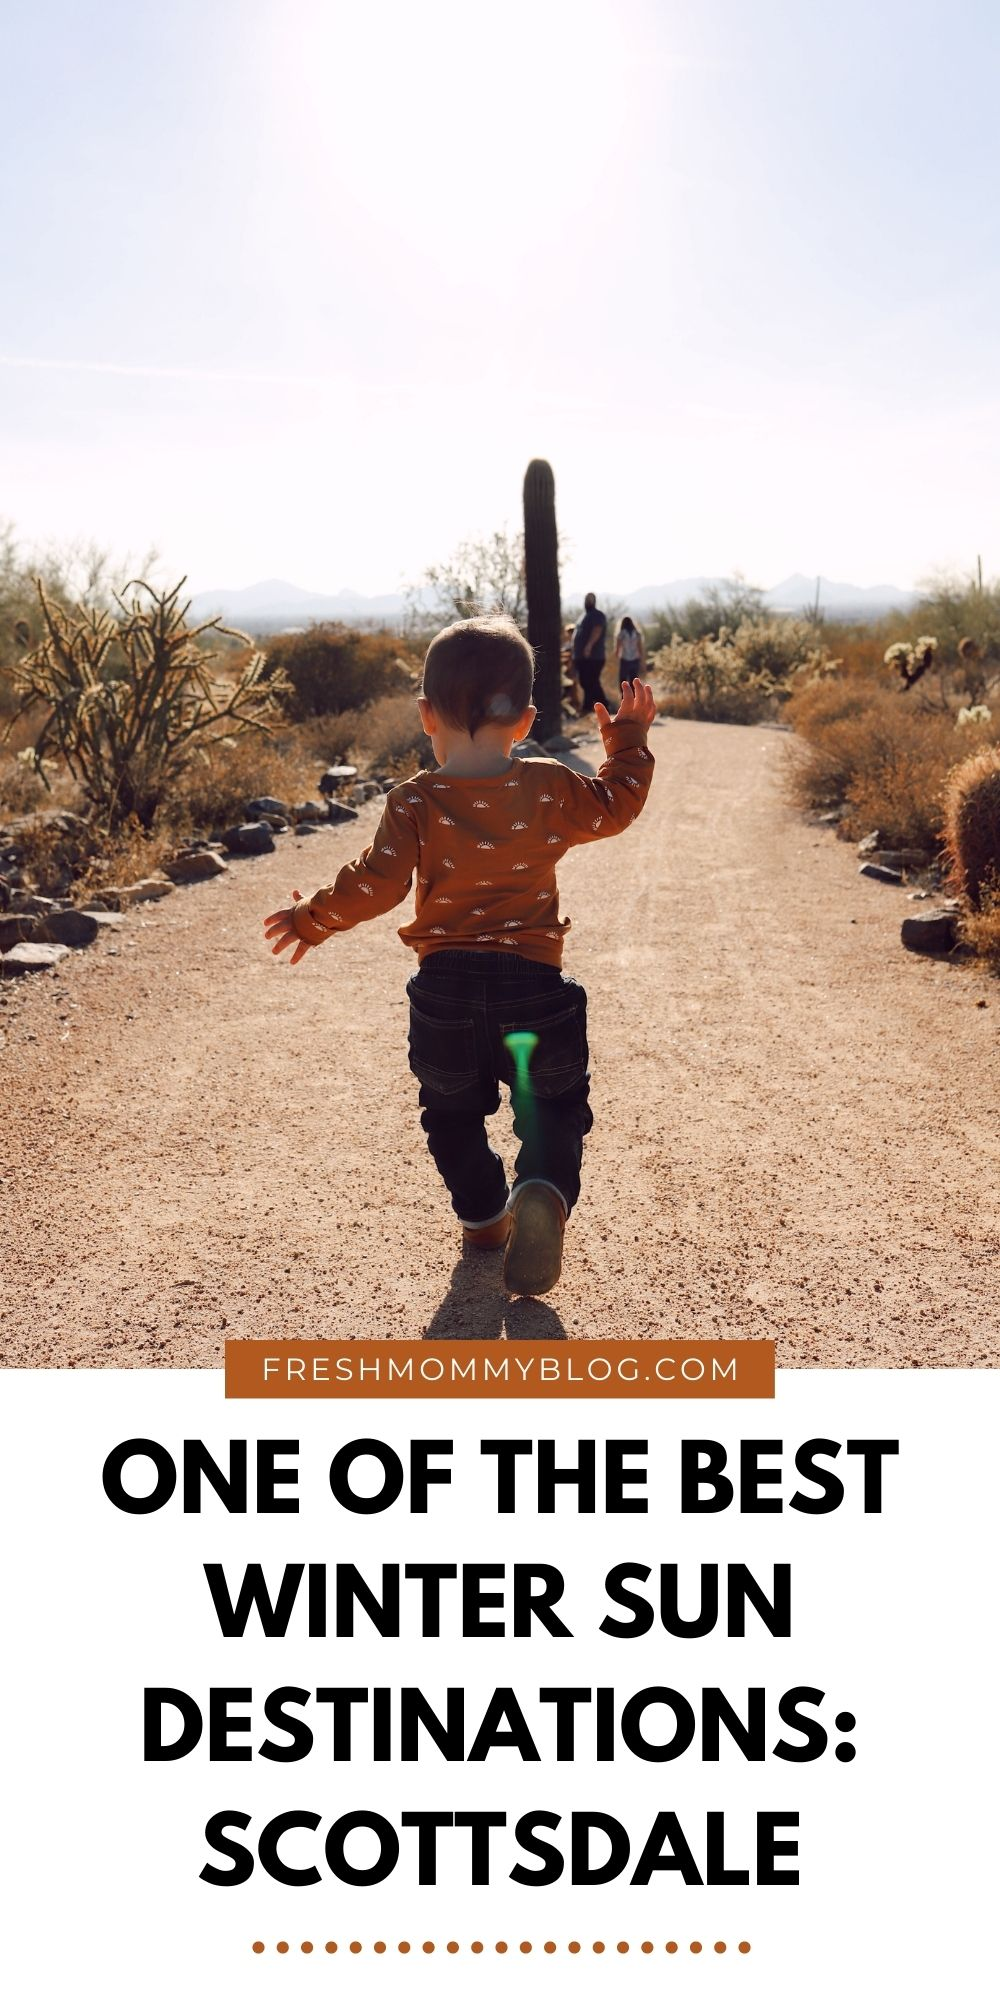 One of the Best Secret Winter Sun Destinations + Ultimate Family Friendly Guide to Scottsdale Arizona |Guide by popular Florida travel blog, Fresh Mommy Blog: Pinterest image of a family in Scottsdale AZ.